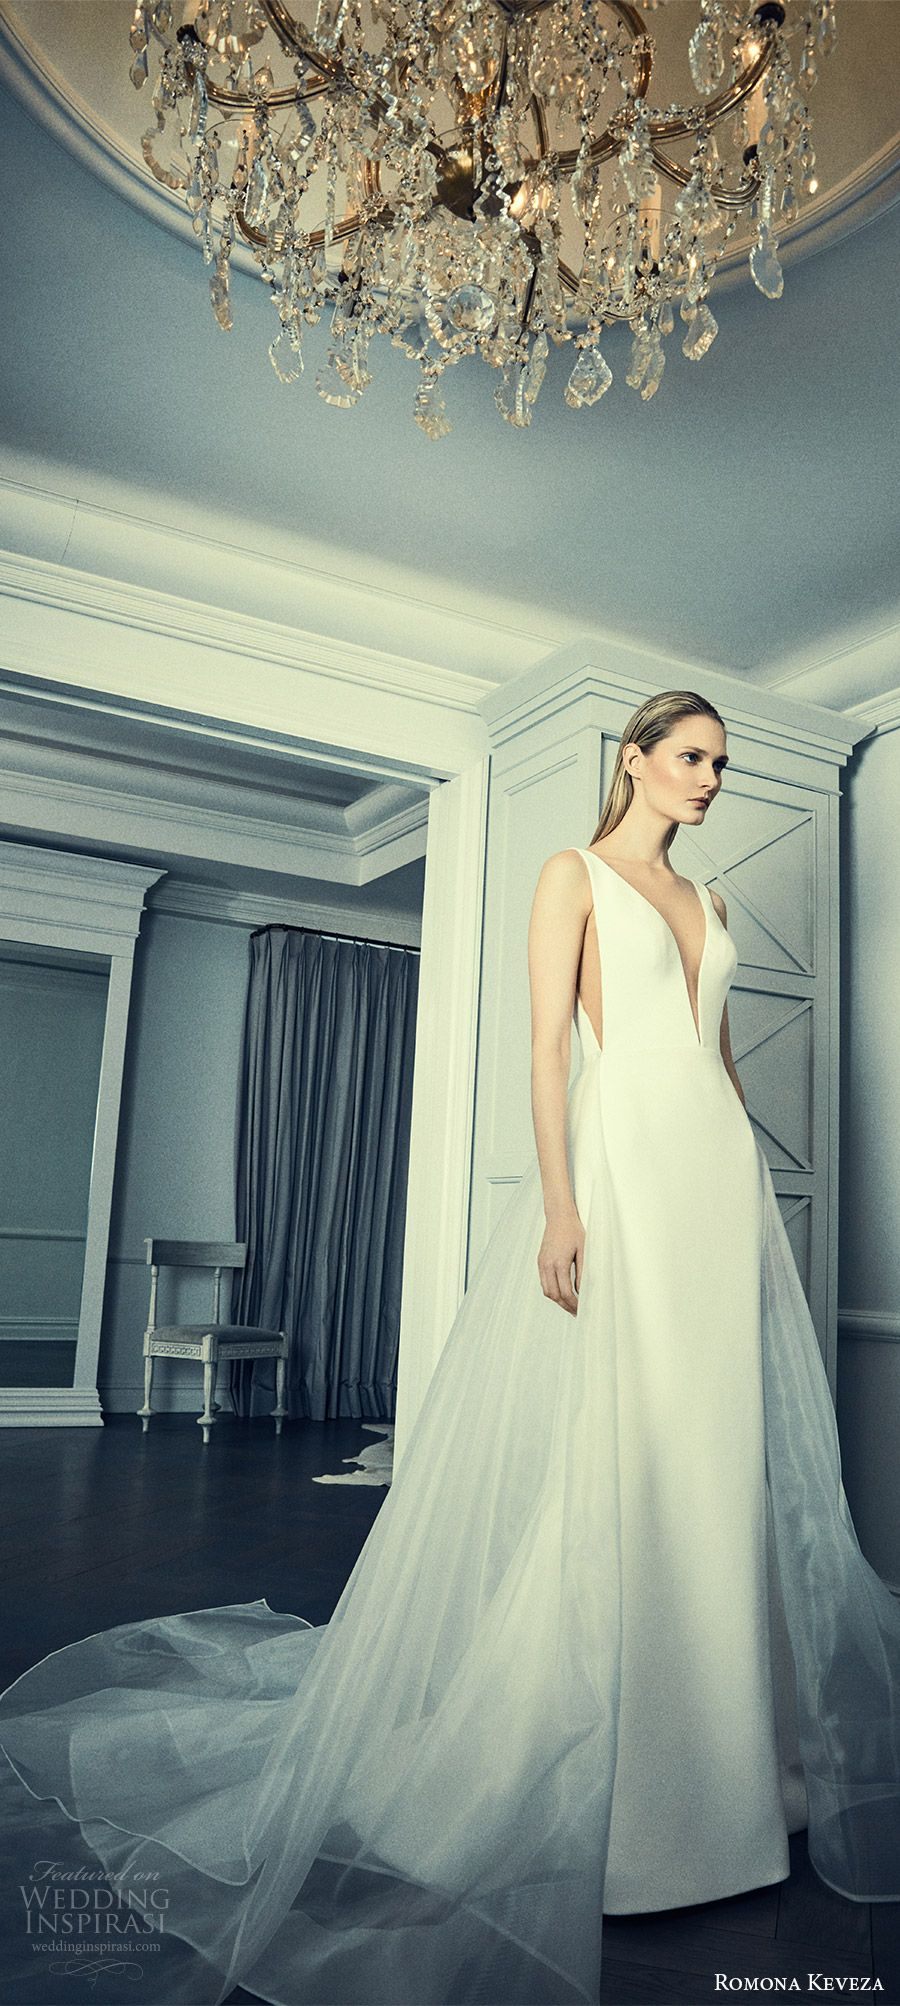 Romona keveza collection spring wedding dresses trumpet